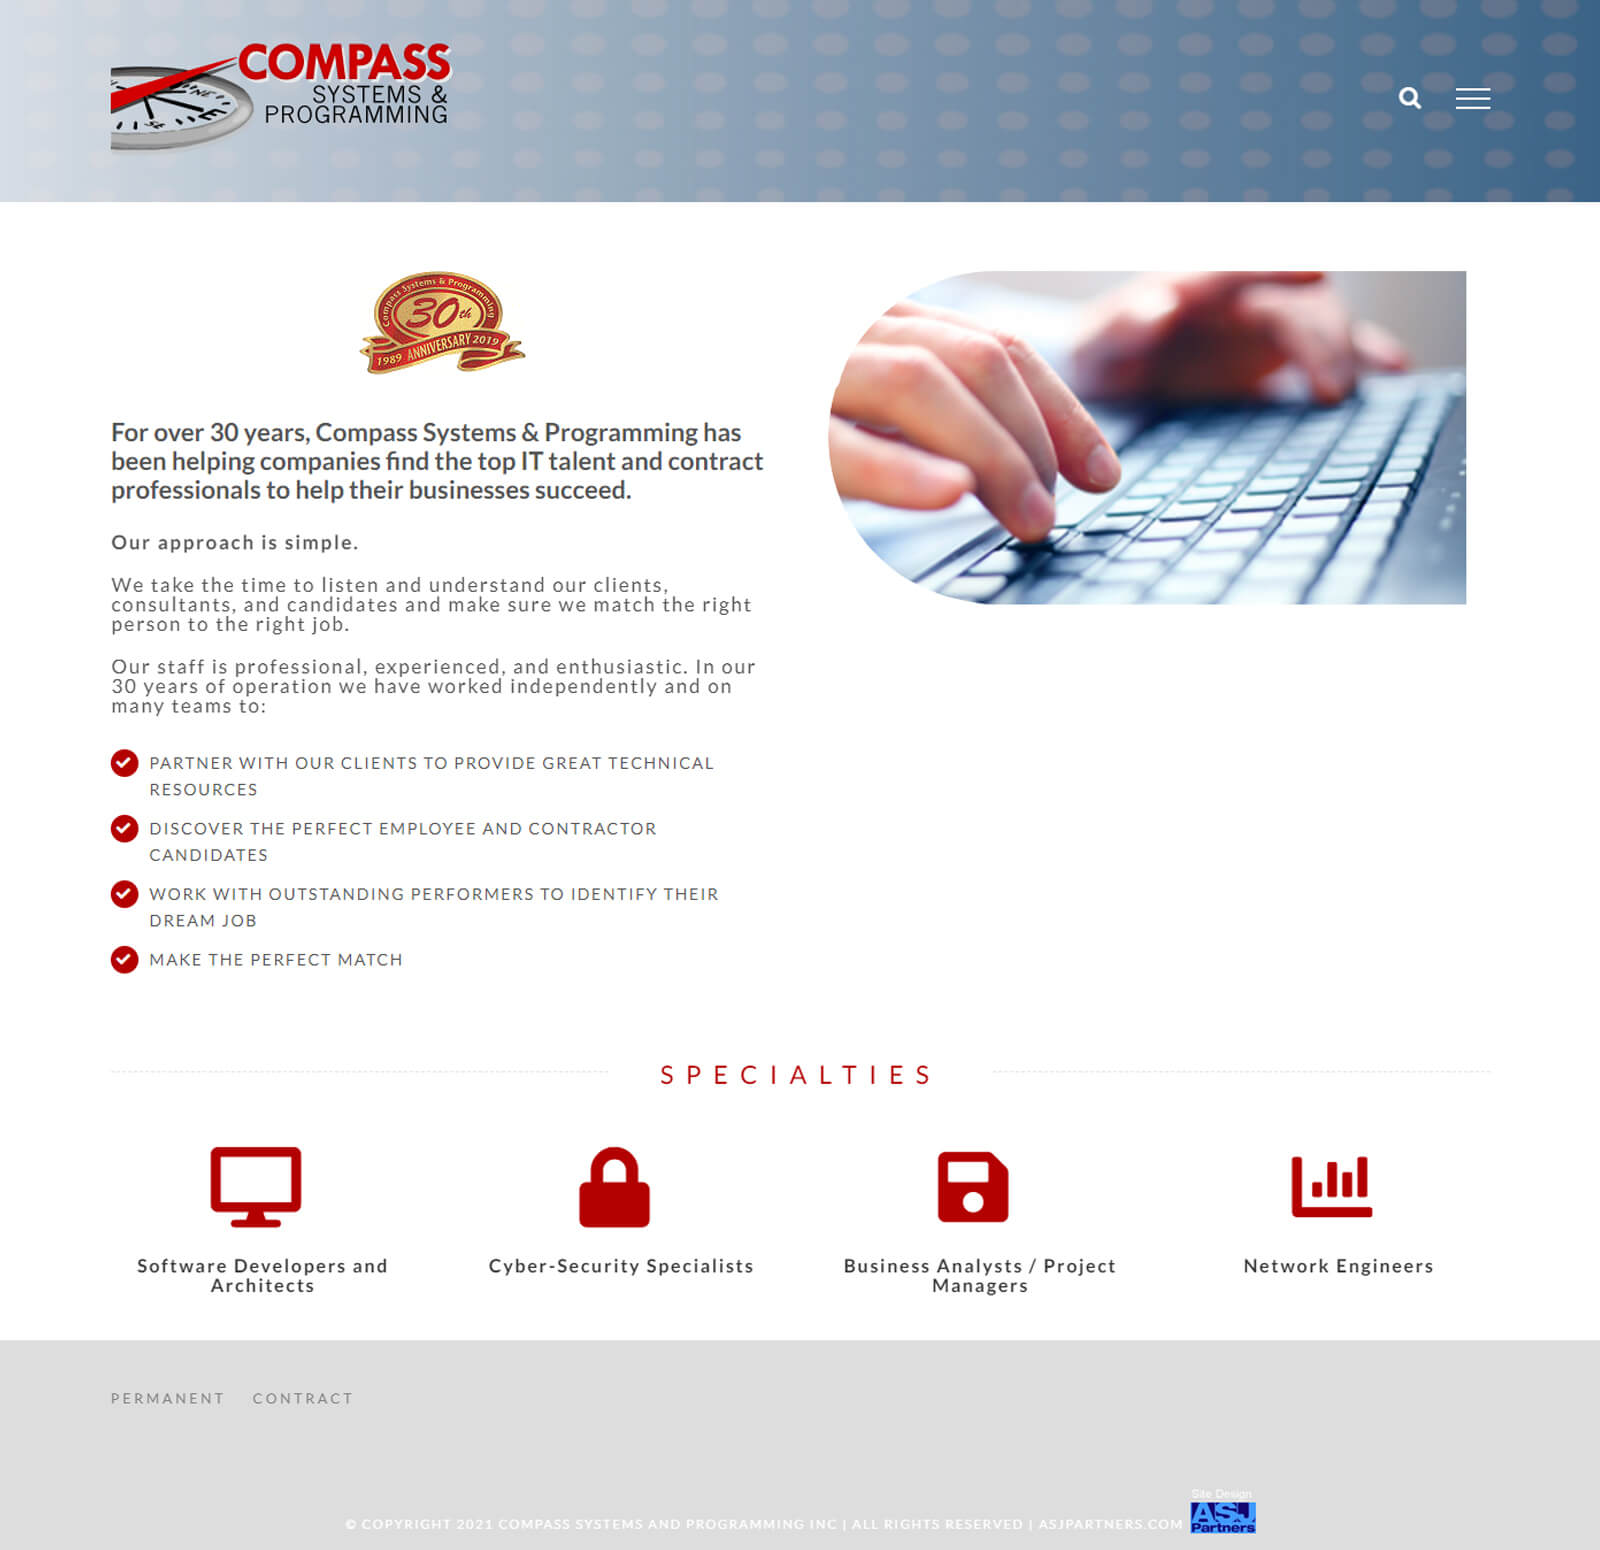 Compass Systems and Programming